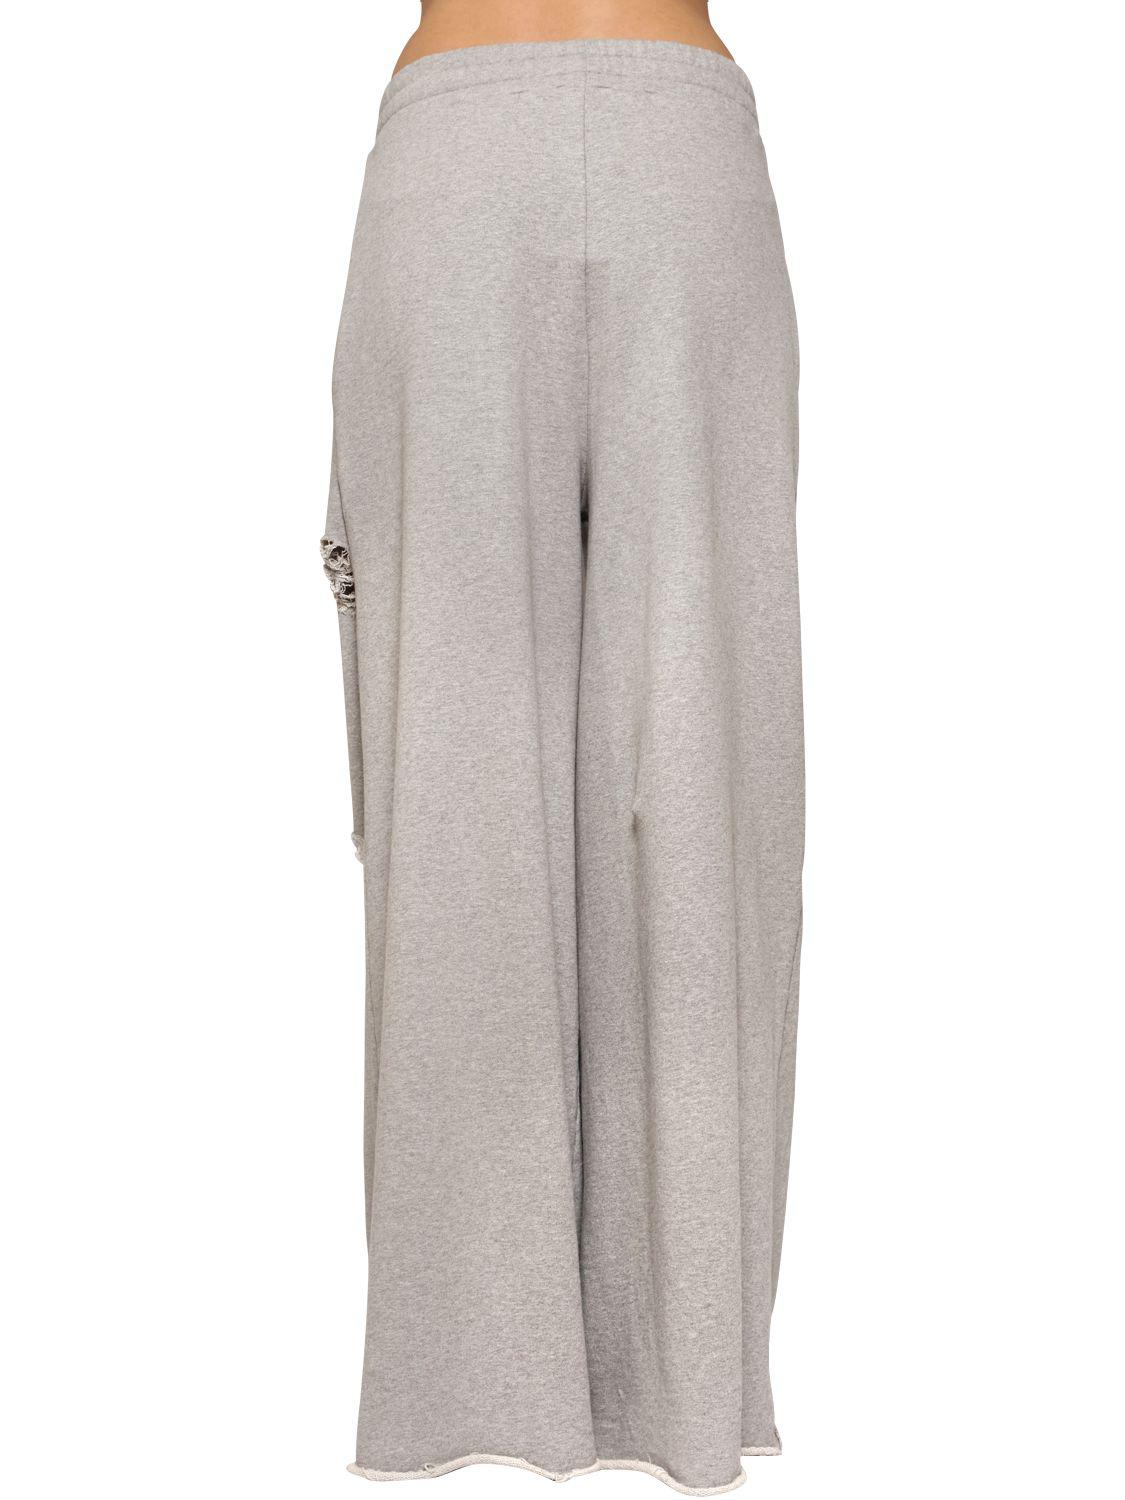 Alexander Wang Destroyed Wide Leg Cotton Sweatpants in Gray - Lyst 40f09732e444d